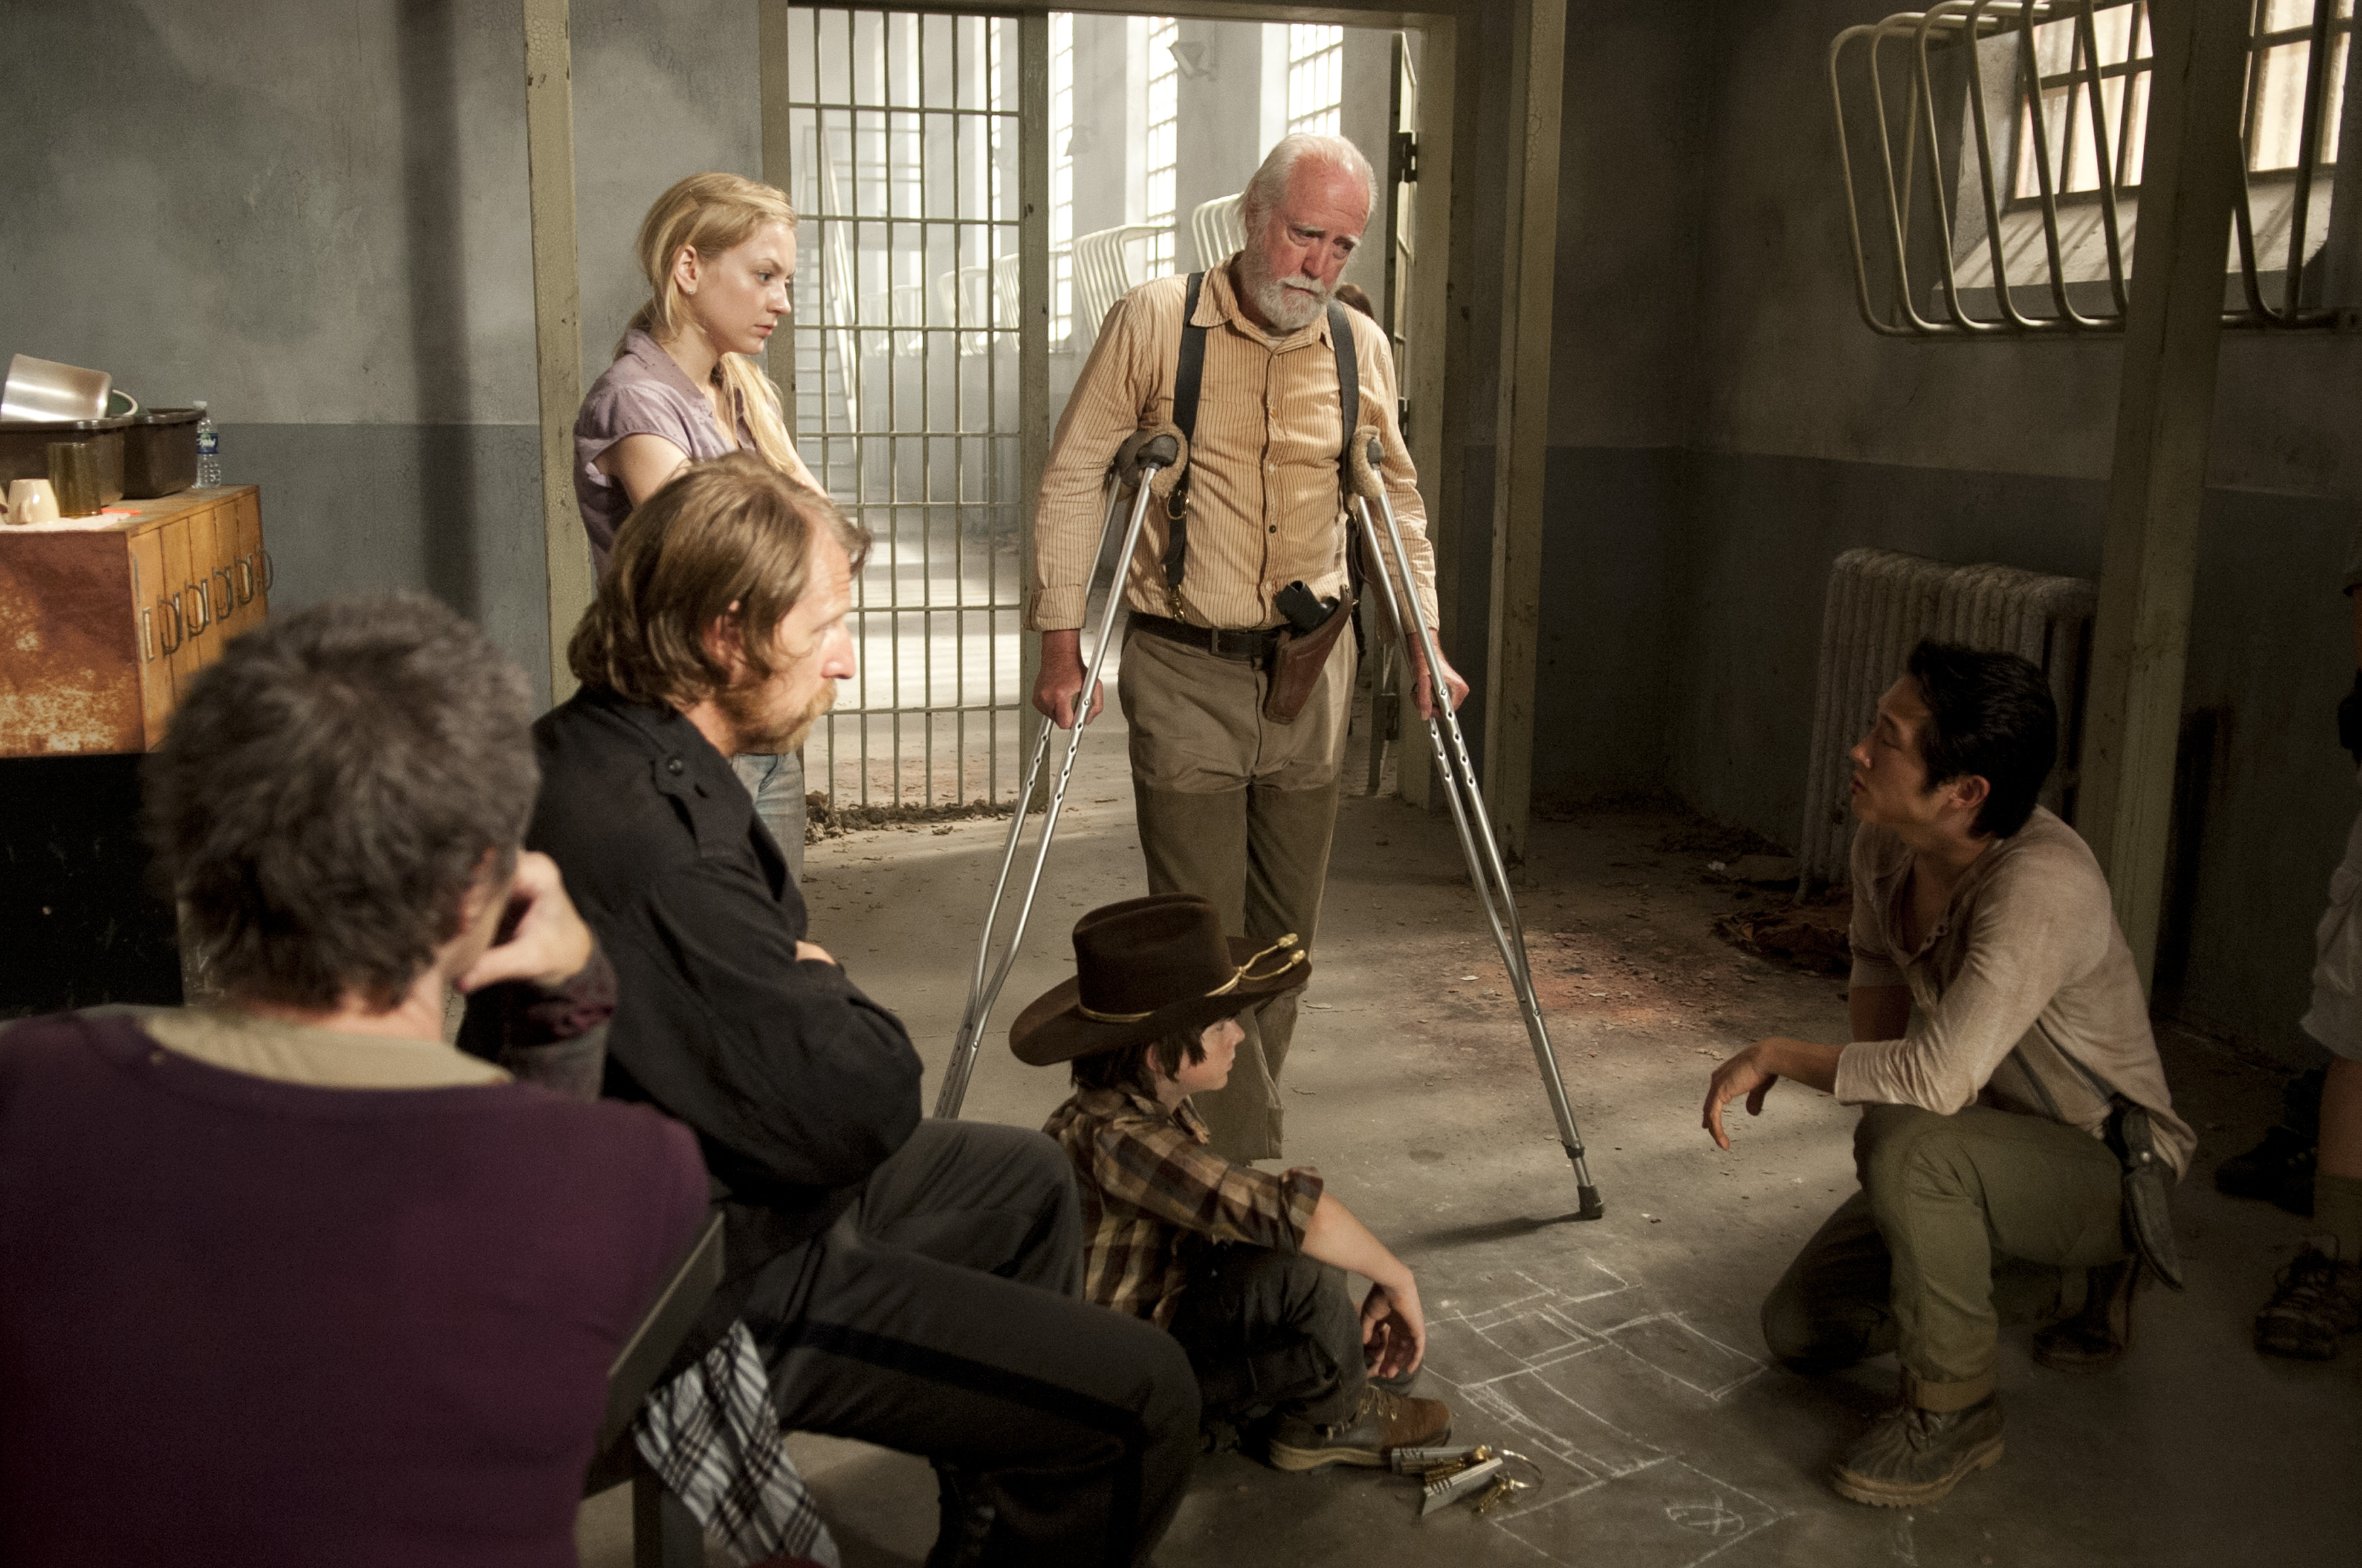 The Walking Dead Season 3 Episode 10 Cast Exclusive: Photos from The Walking Dead Season 3 Episode 10 Home